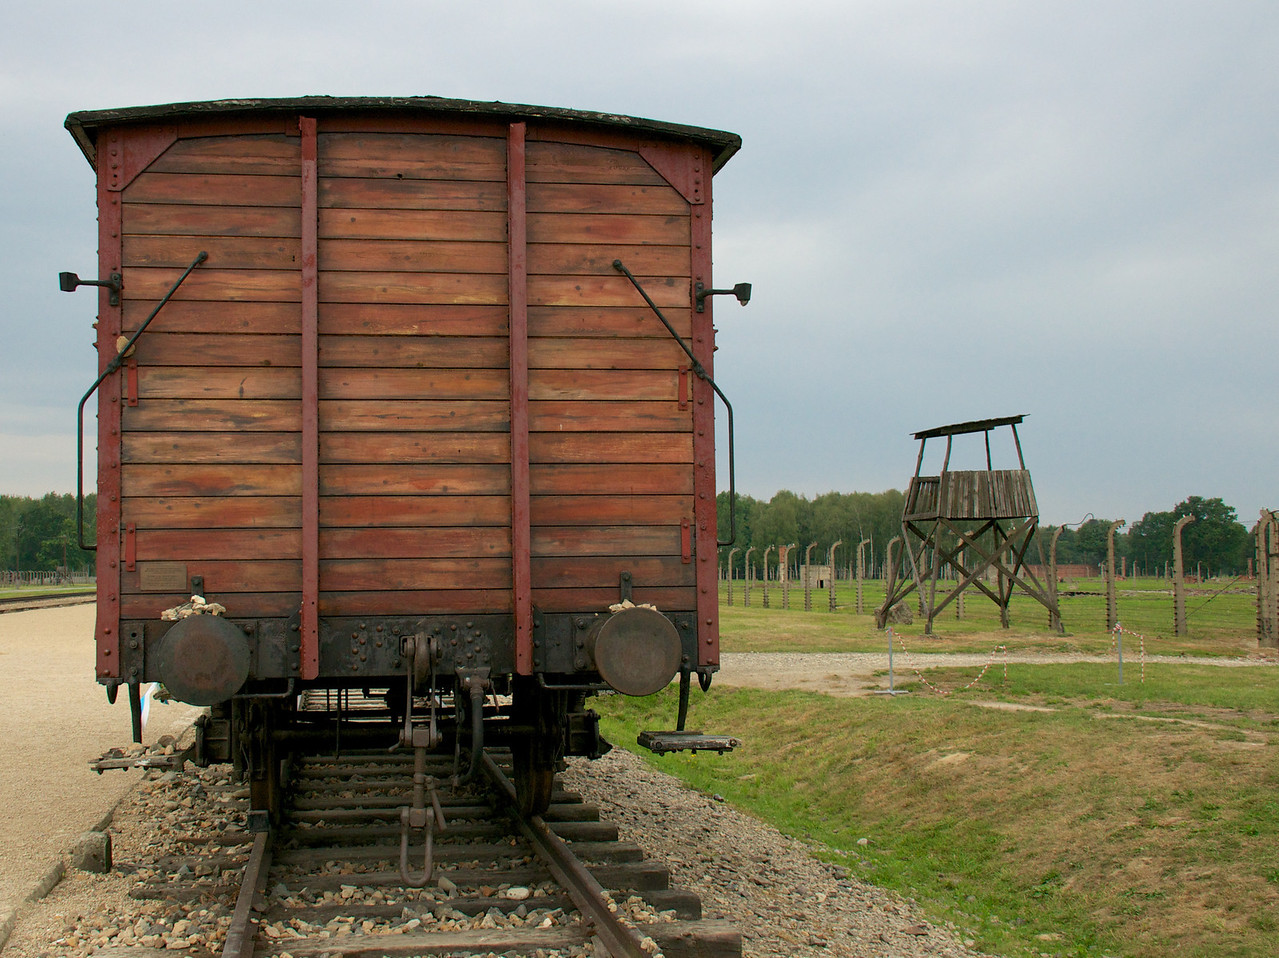 The freight car has been placed here to commemorate the Jews deported form Hungary who were murdered by German Nazis at Auschwitz-Birkenau.